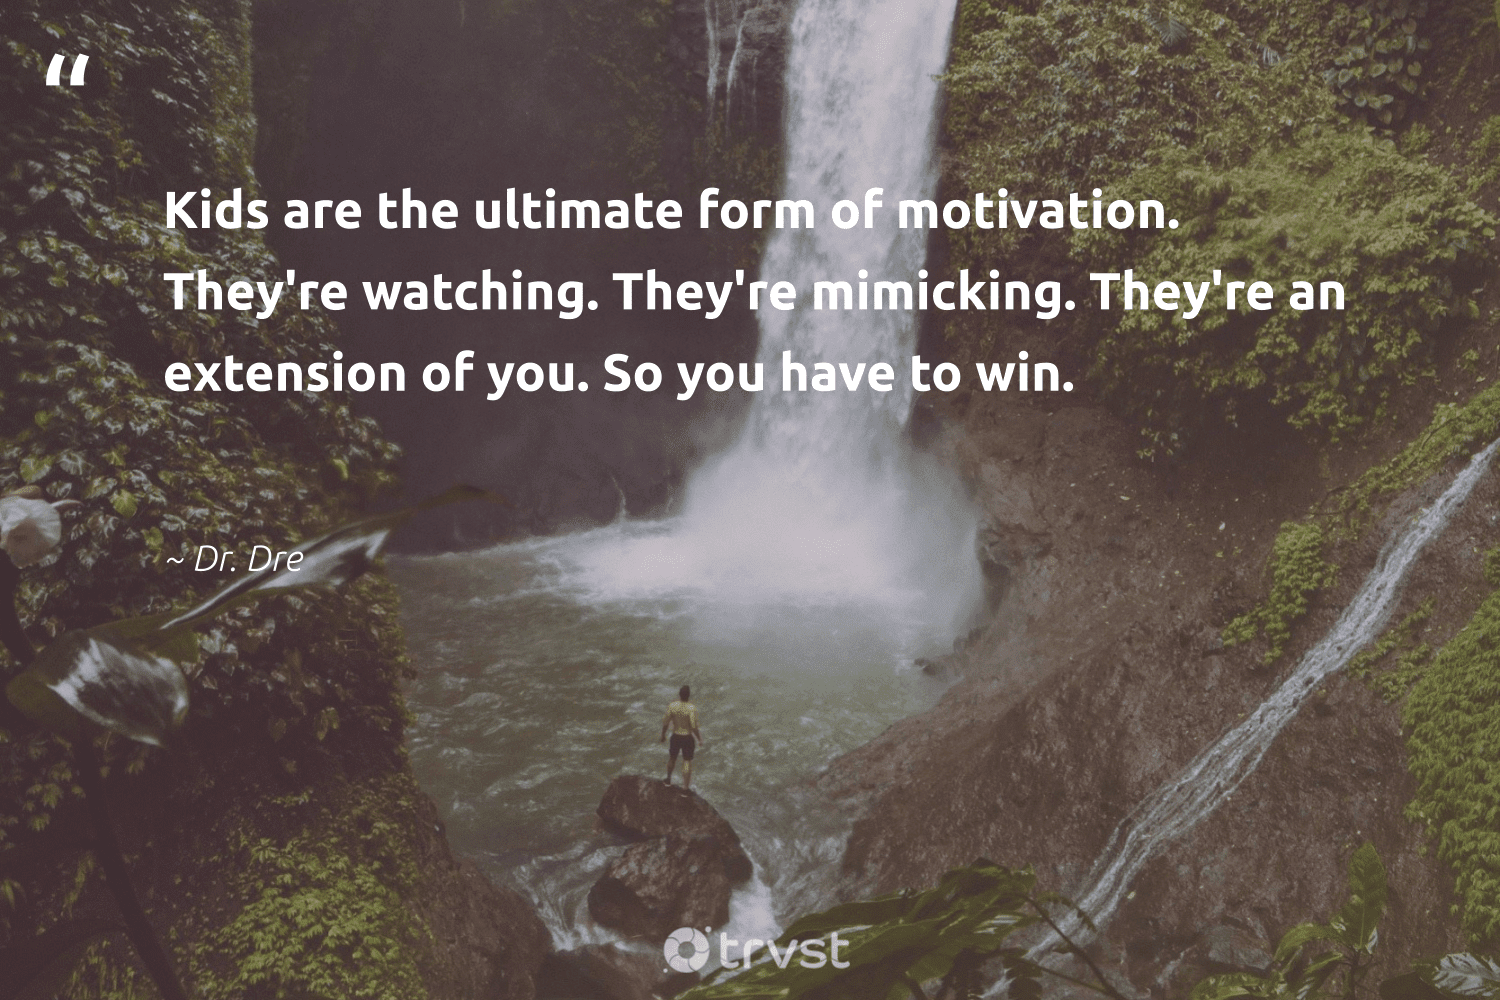 """""""Kids are the ultimate form of motivation. They're watching. They're mimicking. They're an extension of you. So you have to win.""""  - Dr. Dre #trvst #quotes #motivation #entrepreneurmindset #believeinyourself #changemakers #beinspired #mindfulness #domore #mindset #bethechange #positivity"""